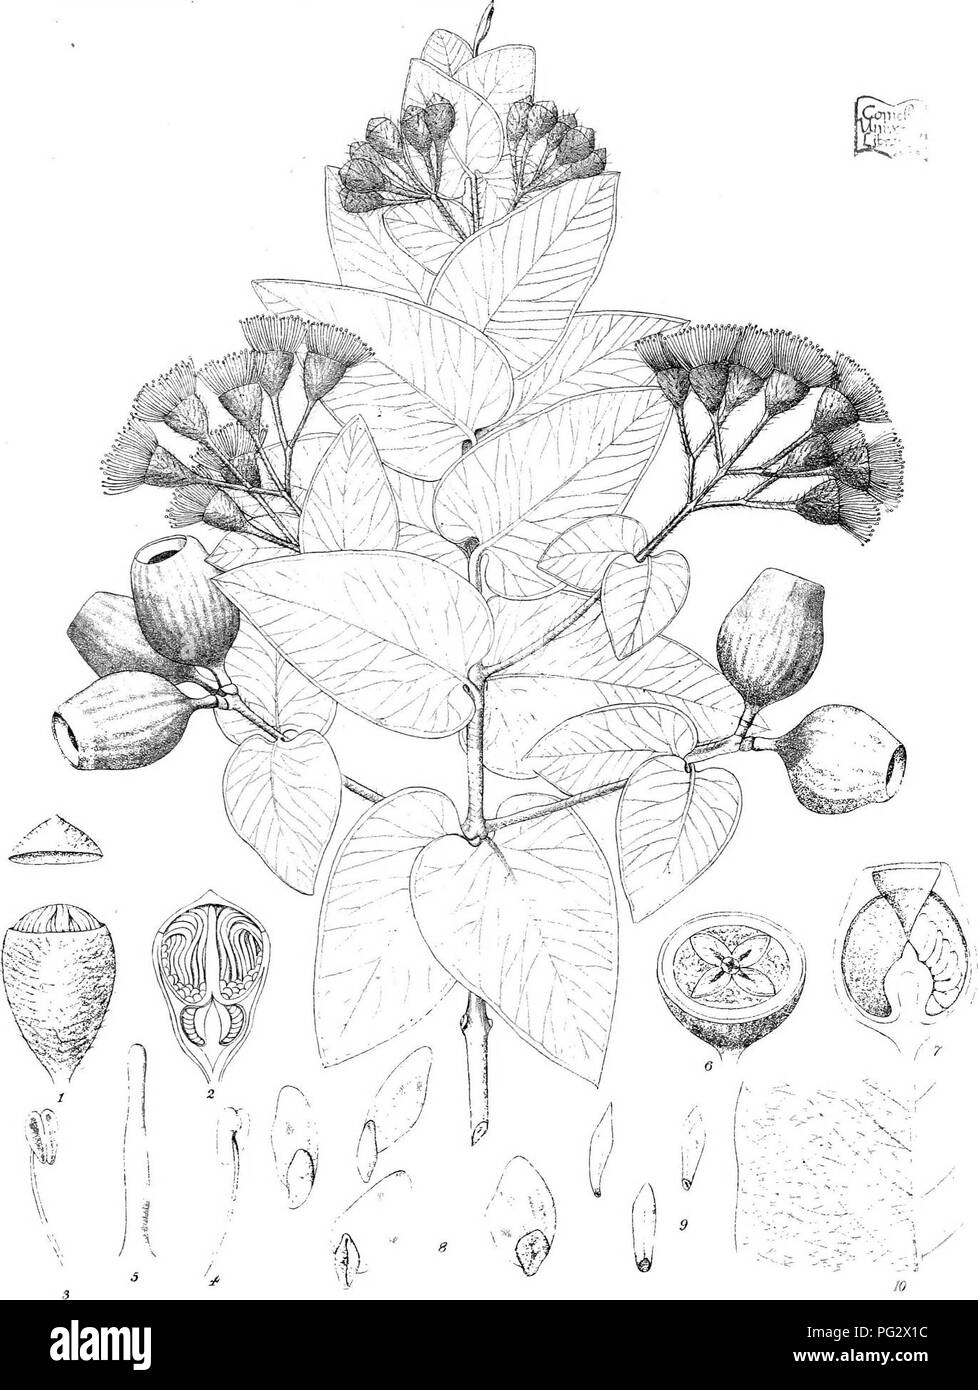 . Eucalyptographia. A descriptive atlas of the eucalypts of Australia and the adjoining islands;. Eucalyptus; Botany. lie lli'.v -. oi'-- U] CTkcsH-; ,'vC? Li>i- FyK il.-evi! Sl.-m L-.lKo Gov.Prinhil OfE» Mf'i: lEm^iillfMig g@il(Dgii. Schauer.. Please note that these images are extracted from scanned page images that may have been digitally enhanced for readability - coloration and appearance of these illustrations may not perfectly resemble the original work.. Mueller, Ferdinand von, 1825-1896. Melbourne, J. Ferres, Govt. Print; [etc. ,etc. ] - Stock Image